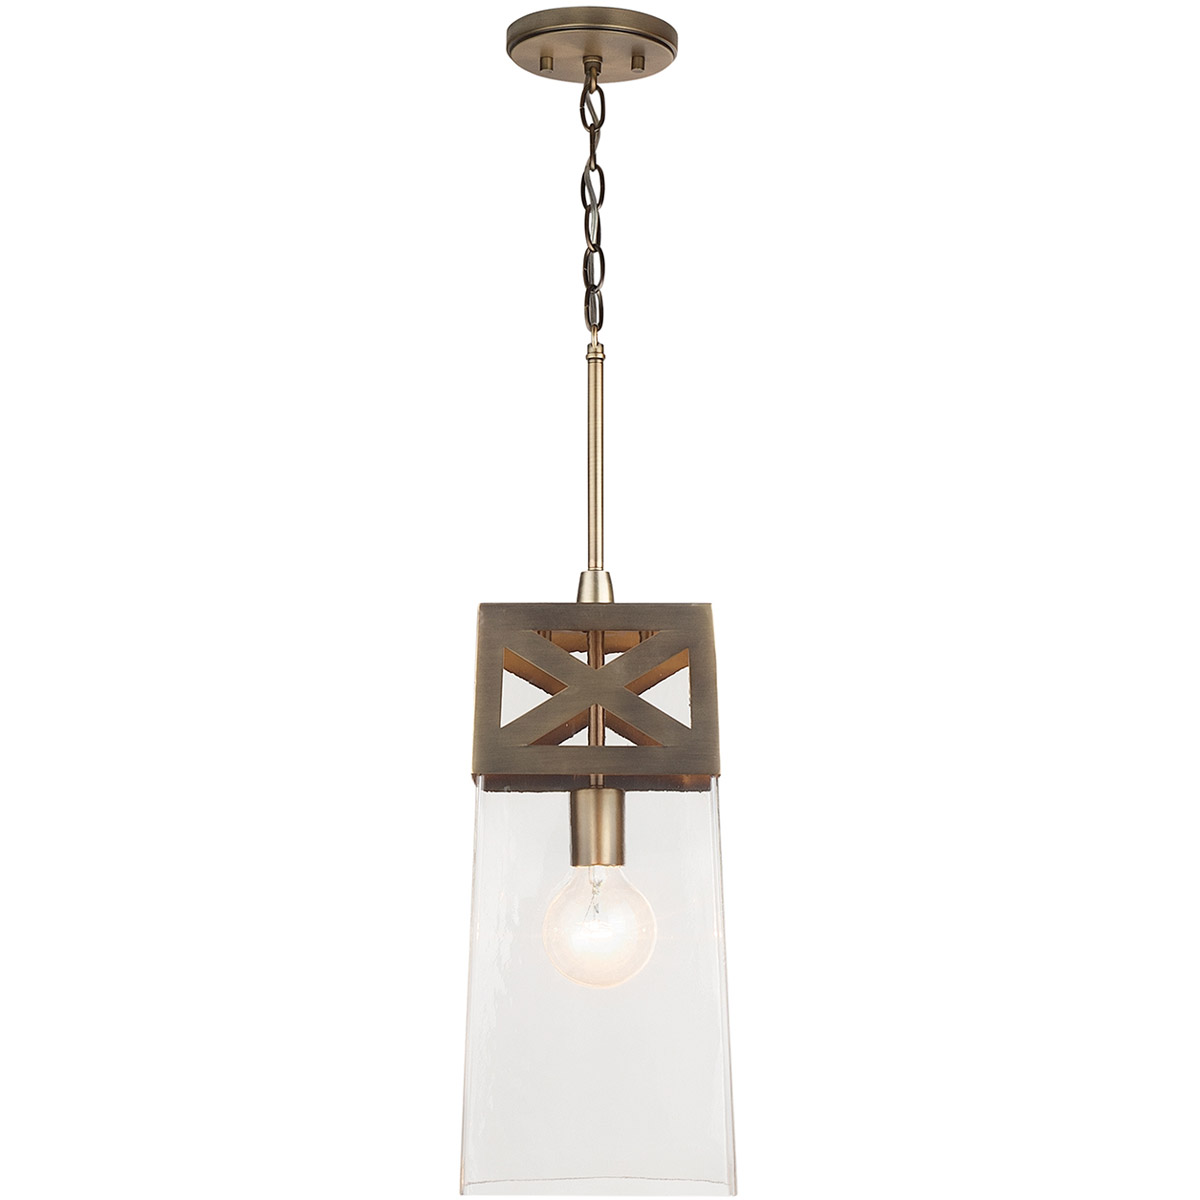 Details About Capital Lighting Fixtures 332511ad Open Box Signature Pendant Aged Br